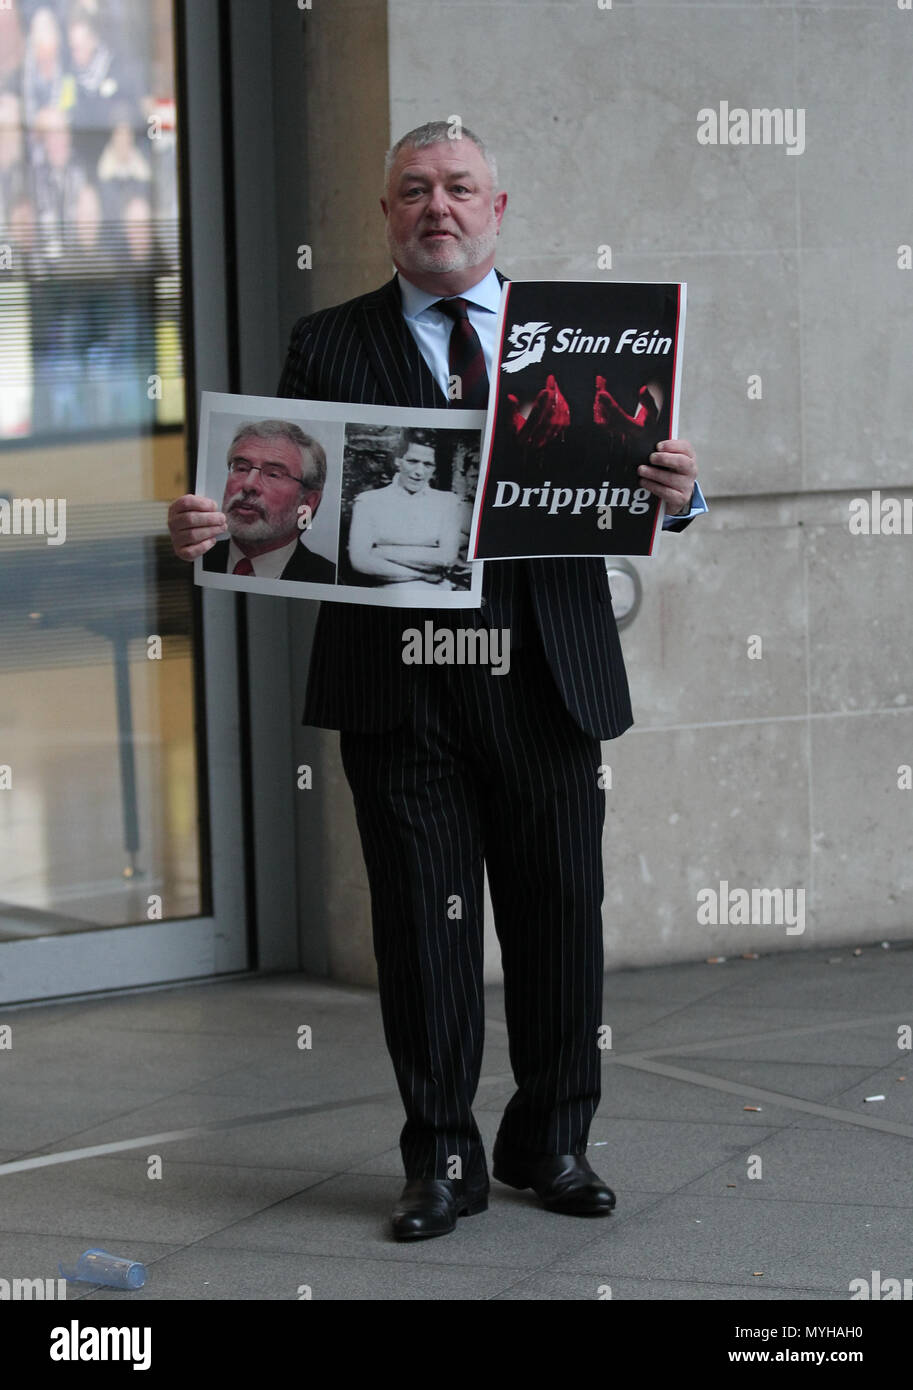 London, UK. 4TH February, 2018. Protestor at the BBC protesting for the BBC interviewing Gerry Adams on the Andrew Marr Show at the BBC studios in Lon - Stock Image